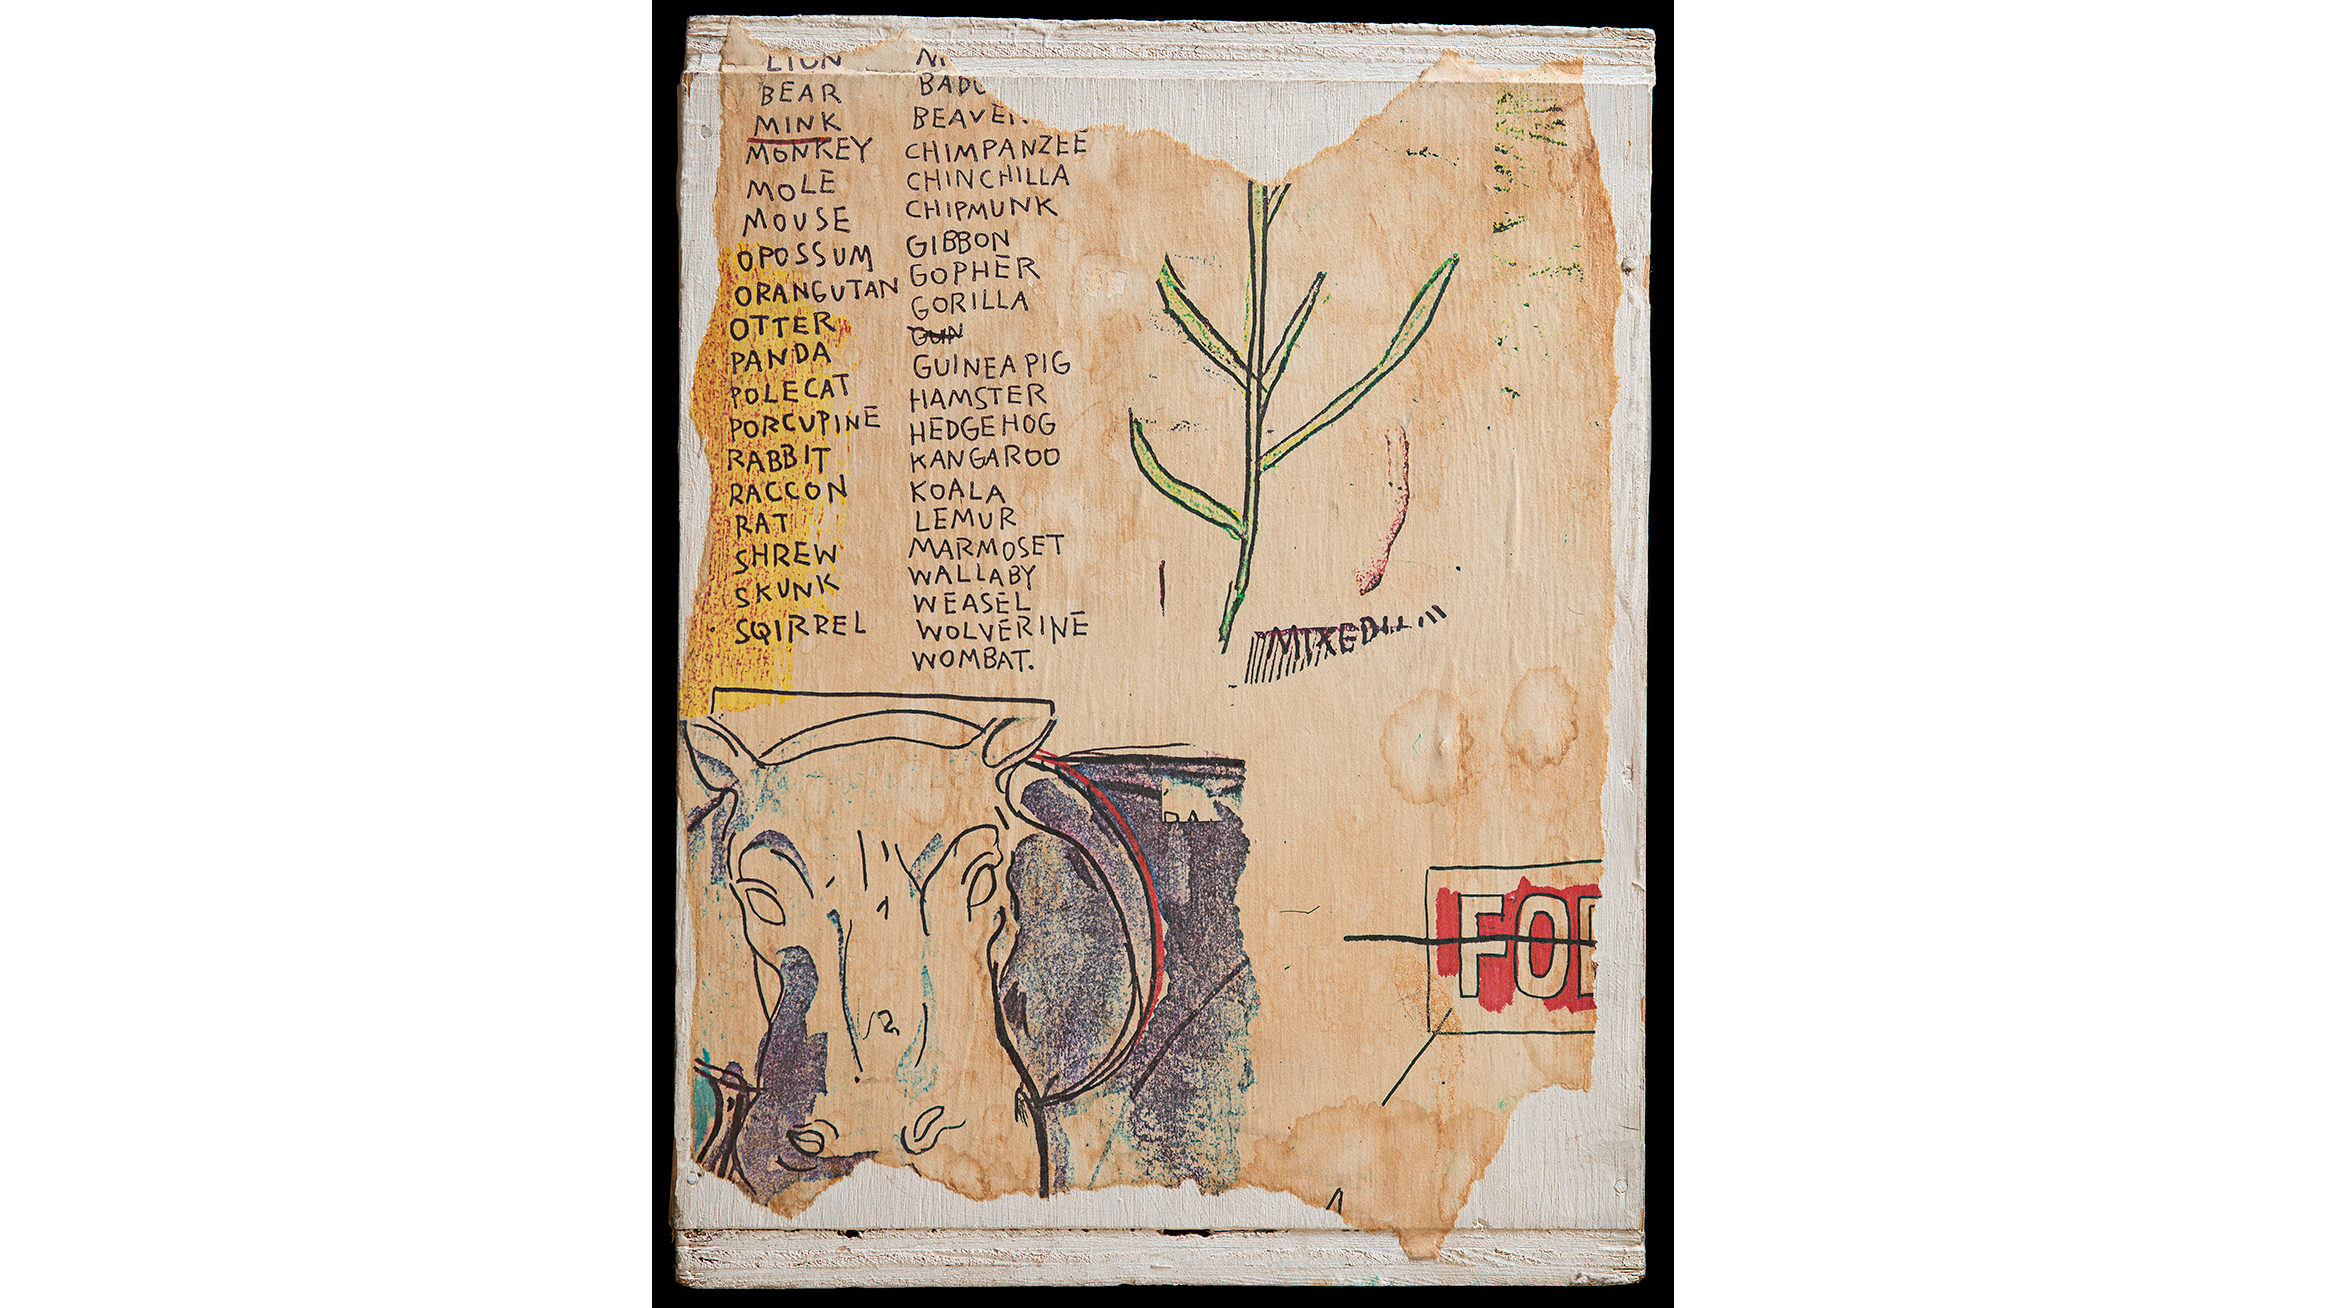 Jean-Michel Basquiat (American, 1960–1988). Untitled (alternate view), 1985. Xerox collage on wood box, overall 11 1/8 x 8 1/2 x 8 1/2 in. (28.26 x 21.59 x 21.59 cm).